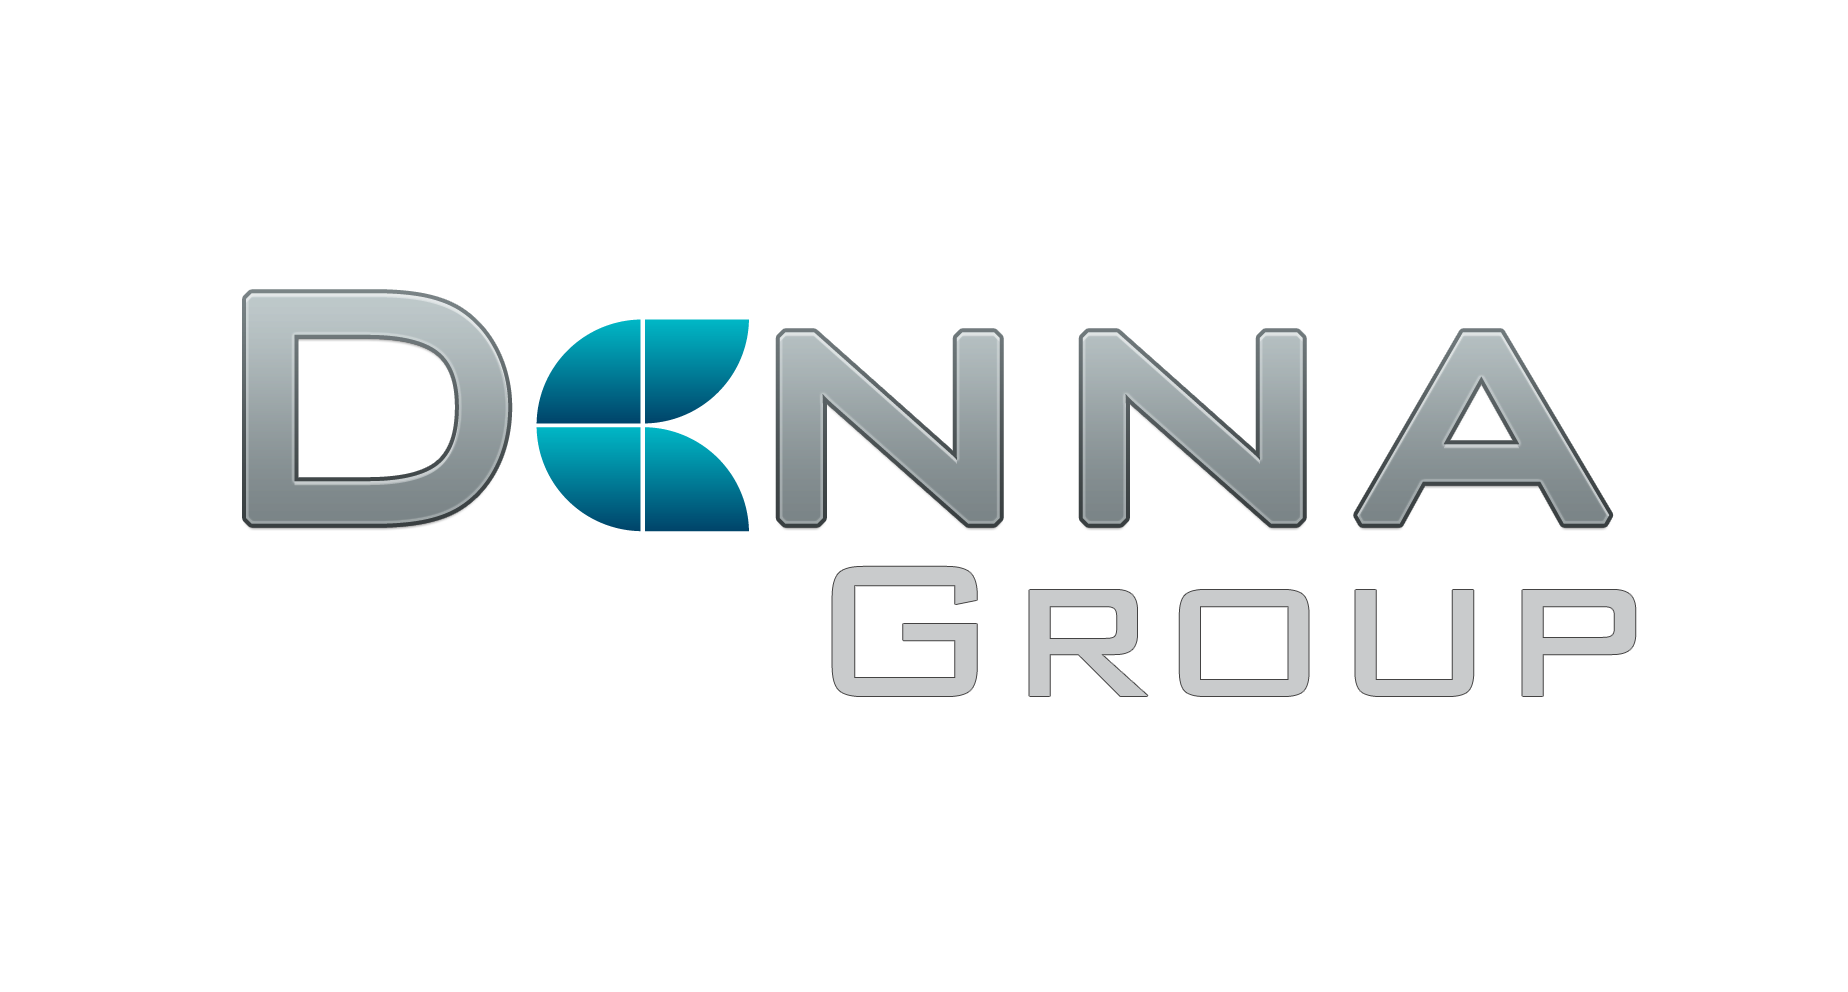 Logo Design by Nishanth Np - Entry No. 344 in the Logo Design Contest Denna Group Logo Design.